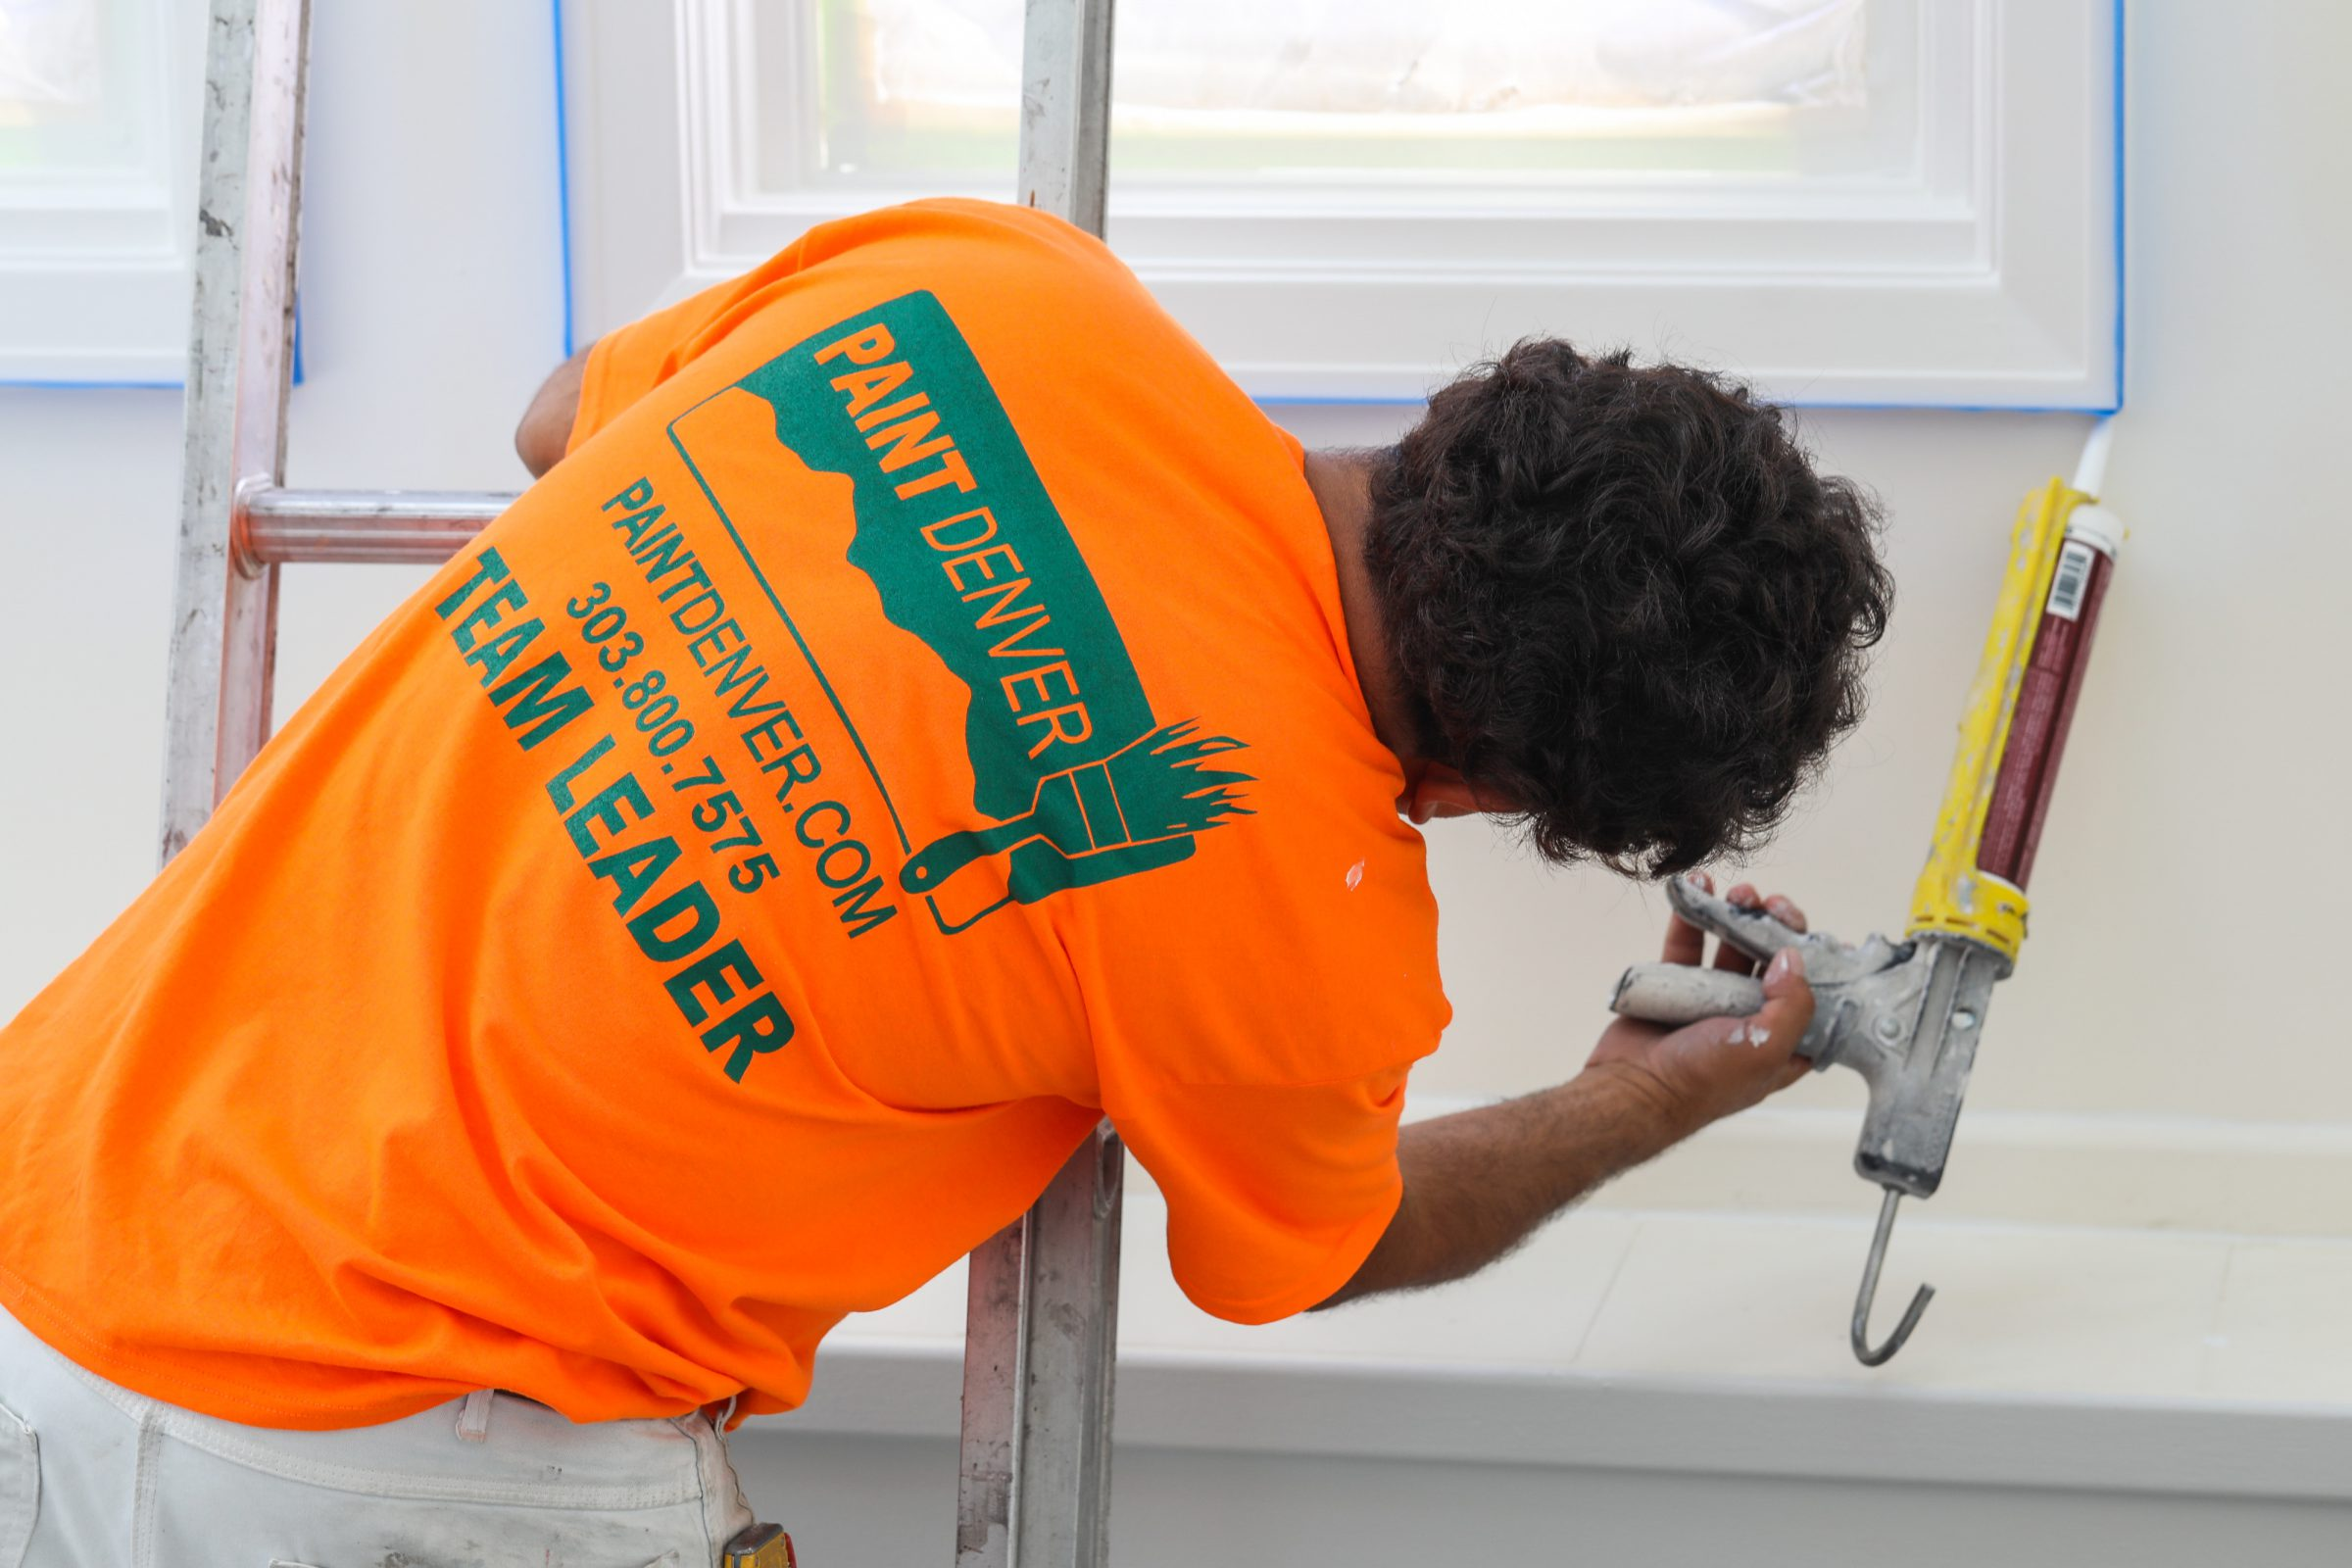 painter denver team working on caulking a home interior after project is completed